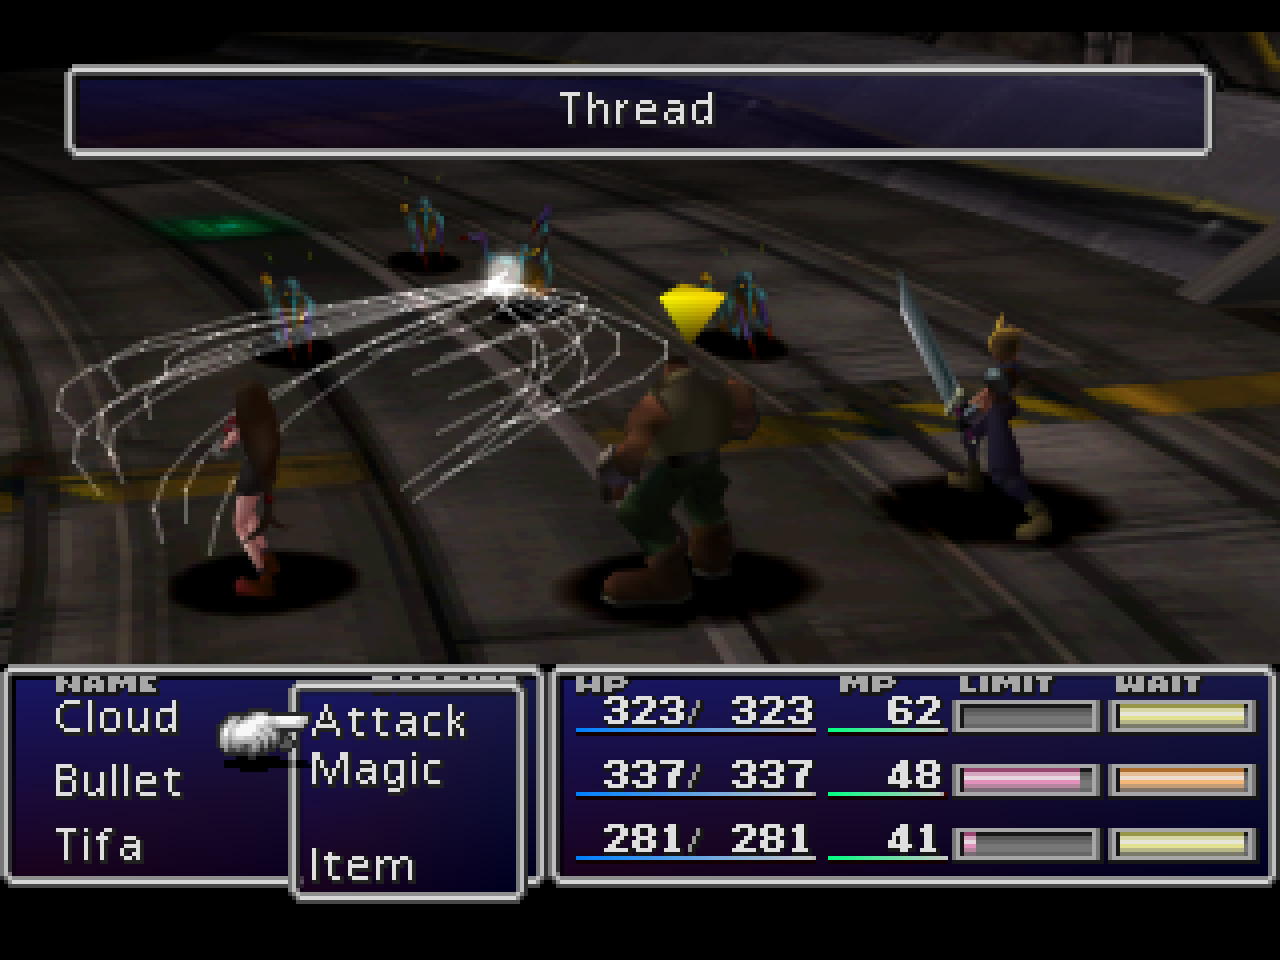 PS1 Emulation can do amazing things nowadays (FFVII) | ResetEra